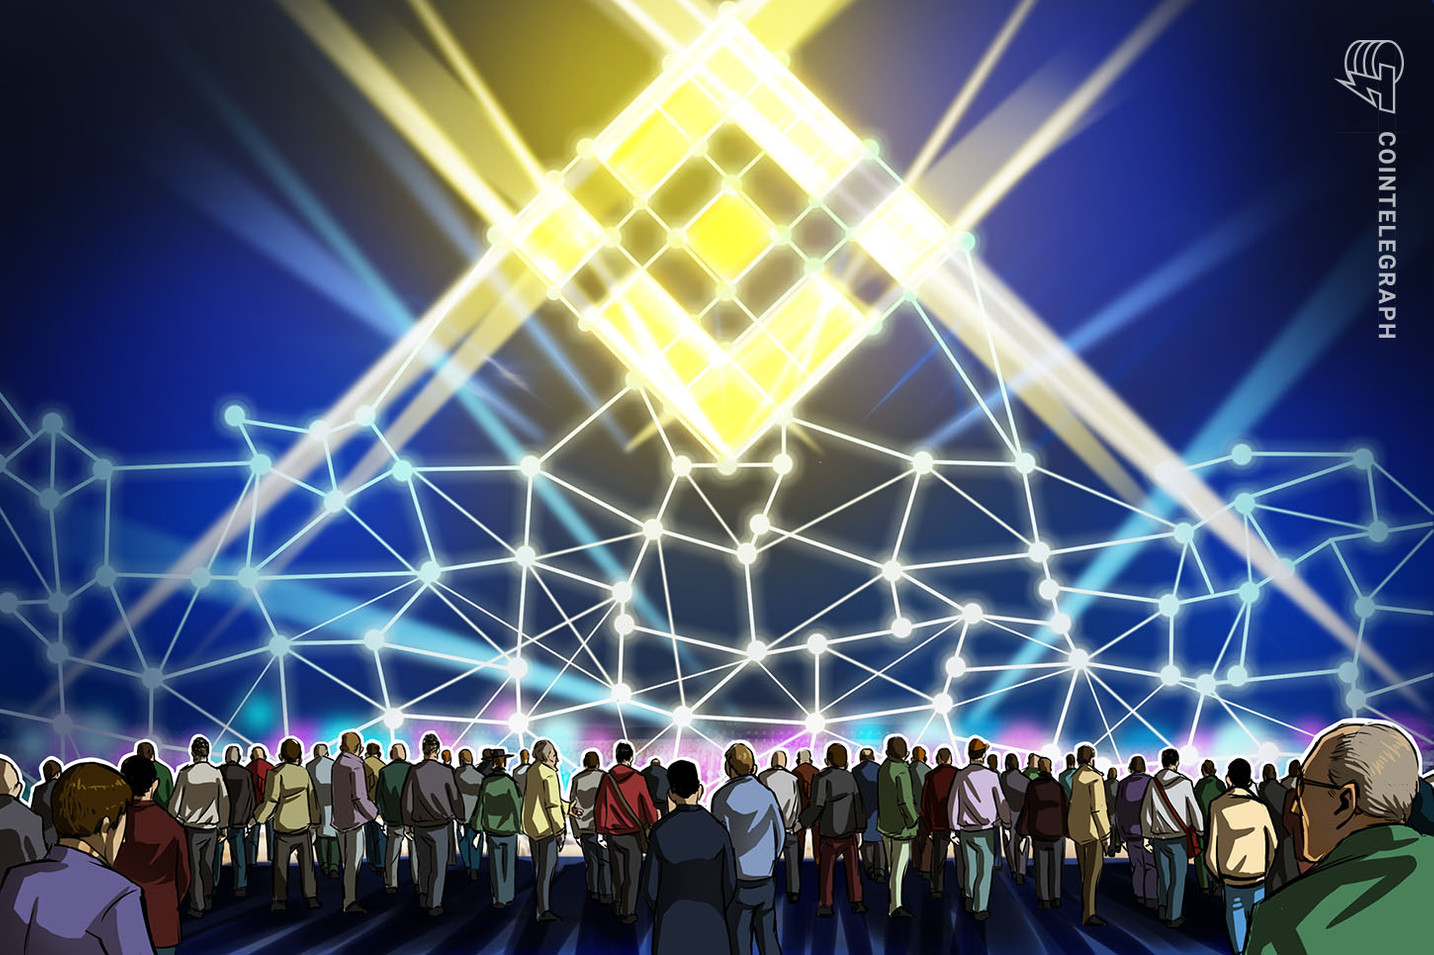 'Future is Here' Declares CEO as Binance Transfers $1.2 Billion for Under 2 Cents